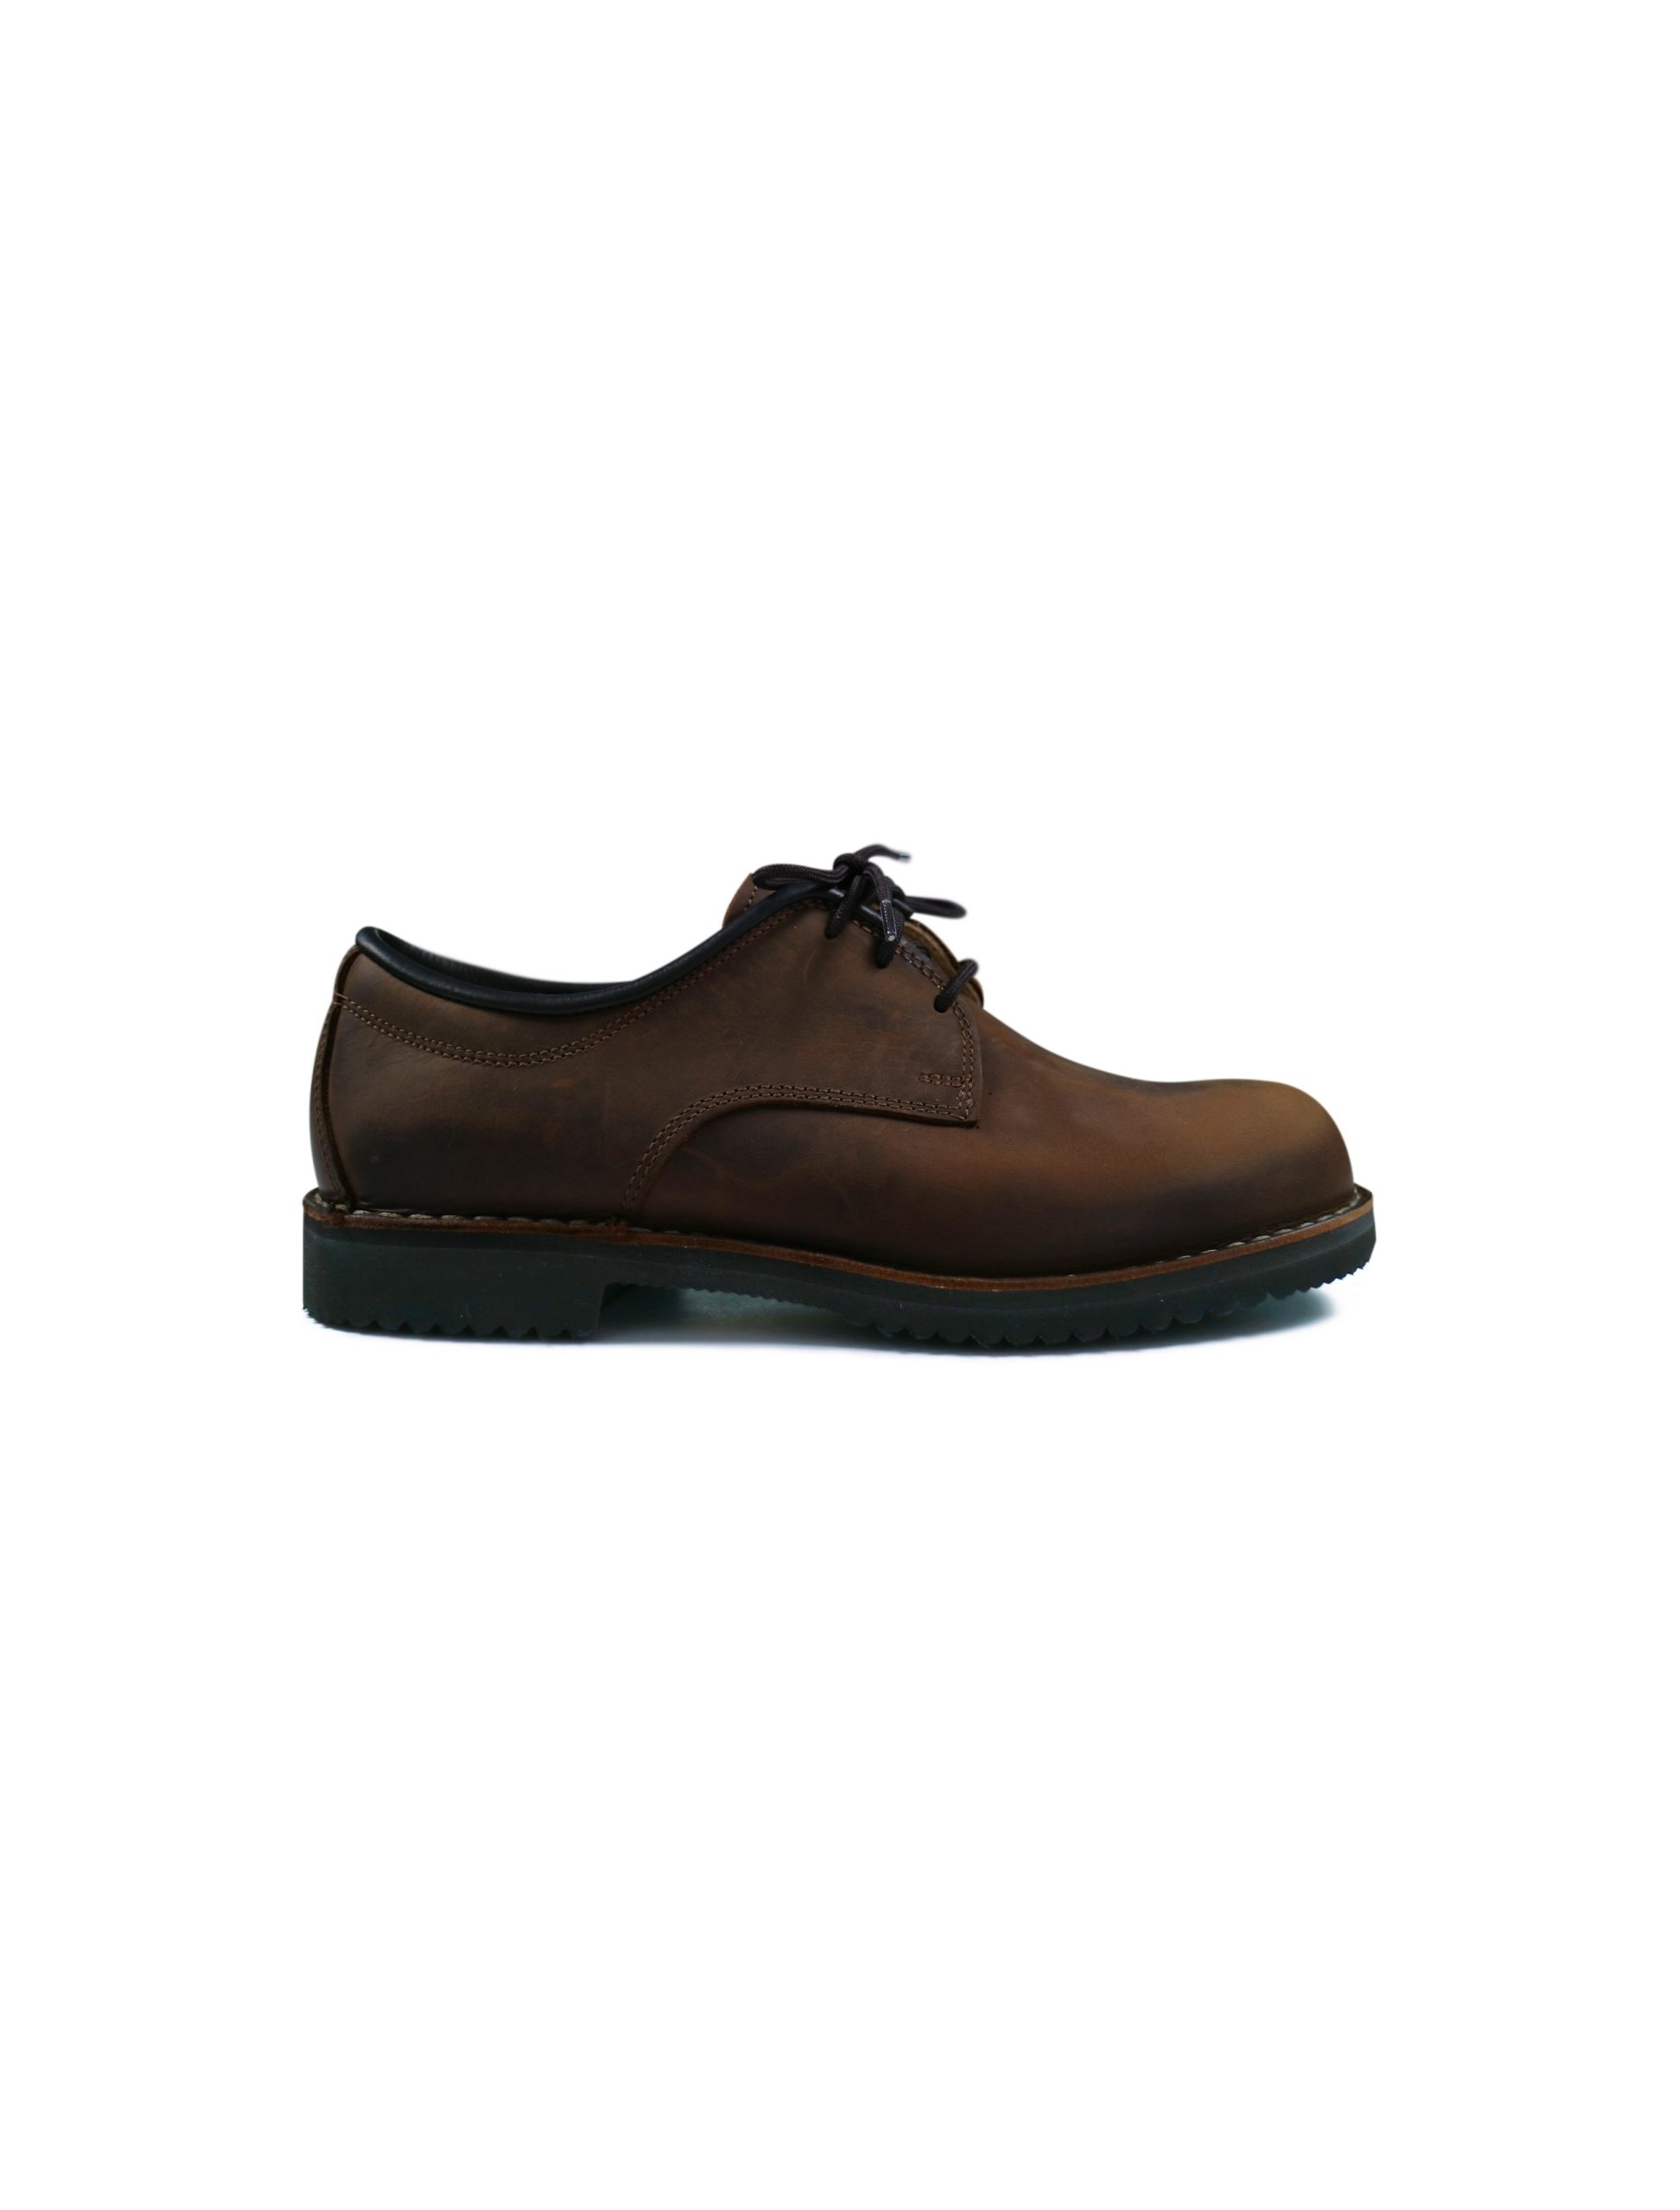 Wooden Derby Brown | Wooden Store